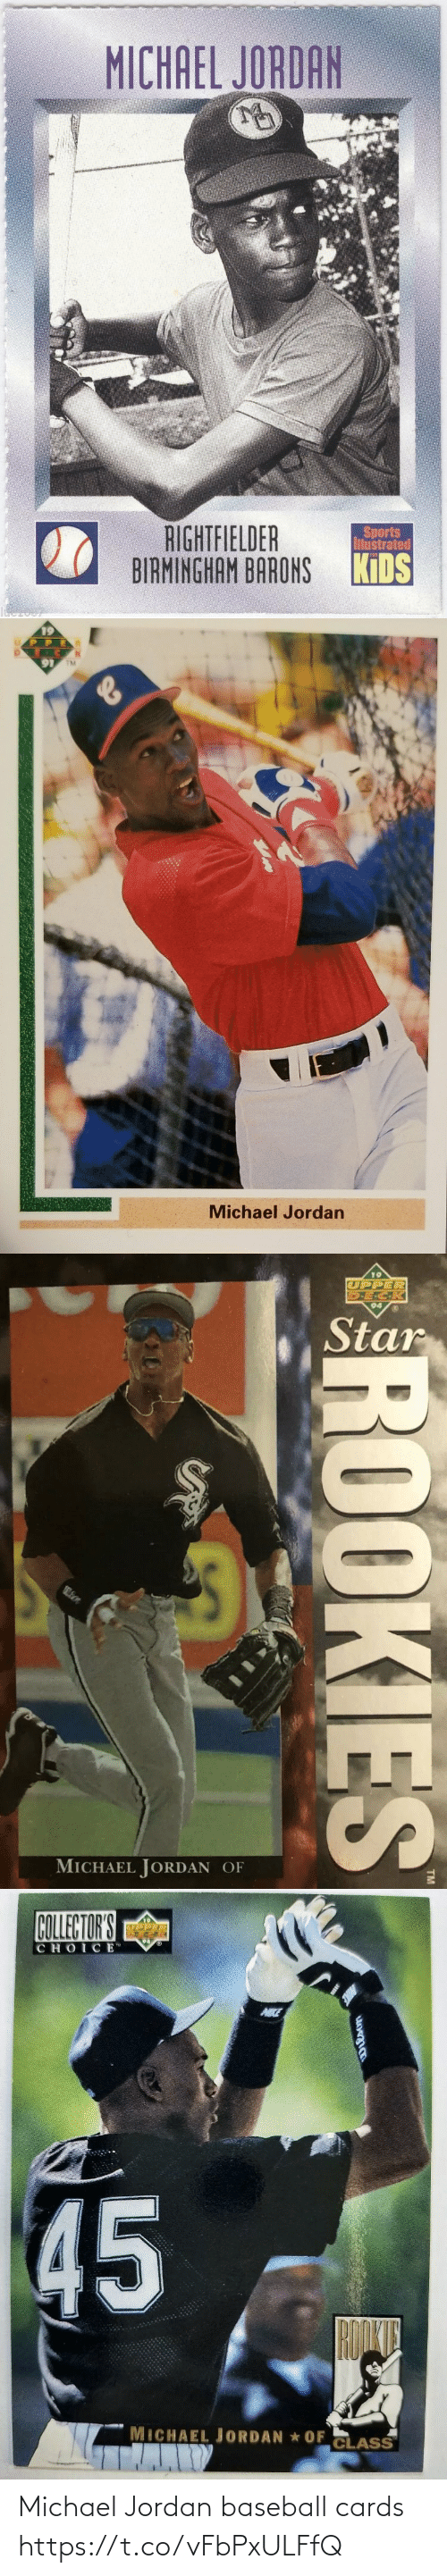 cards: Michael Jordan baseball cards https://t.co/vFbPxULFfQ